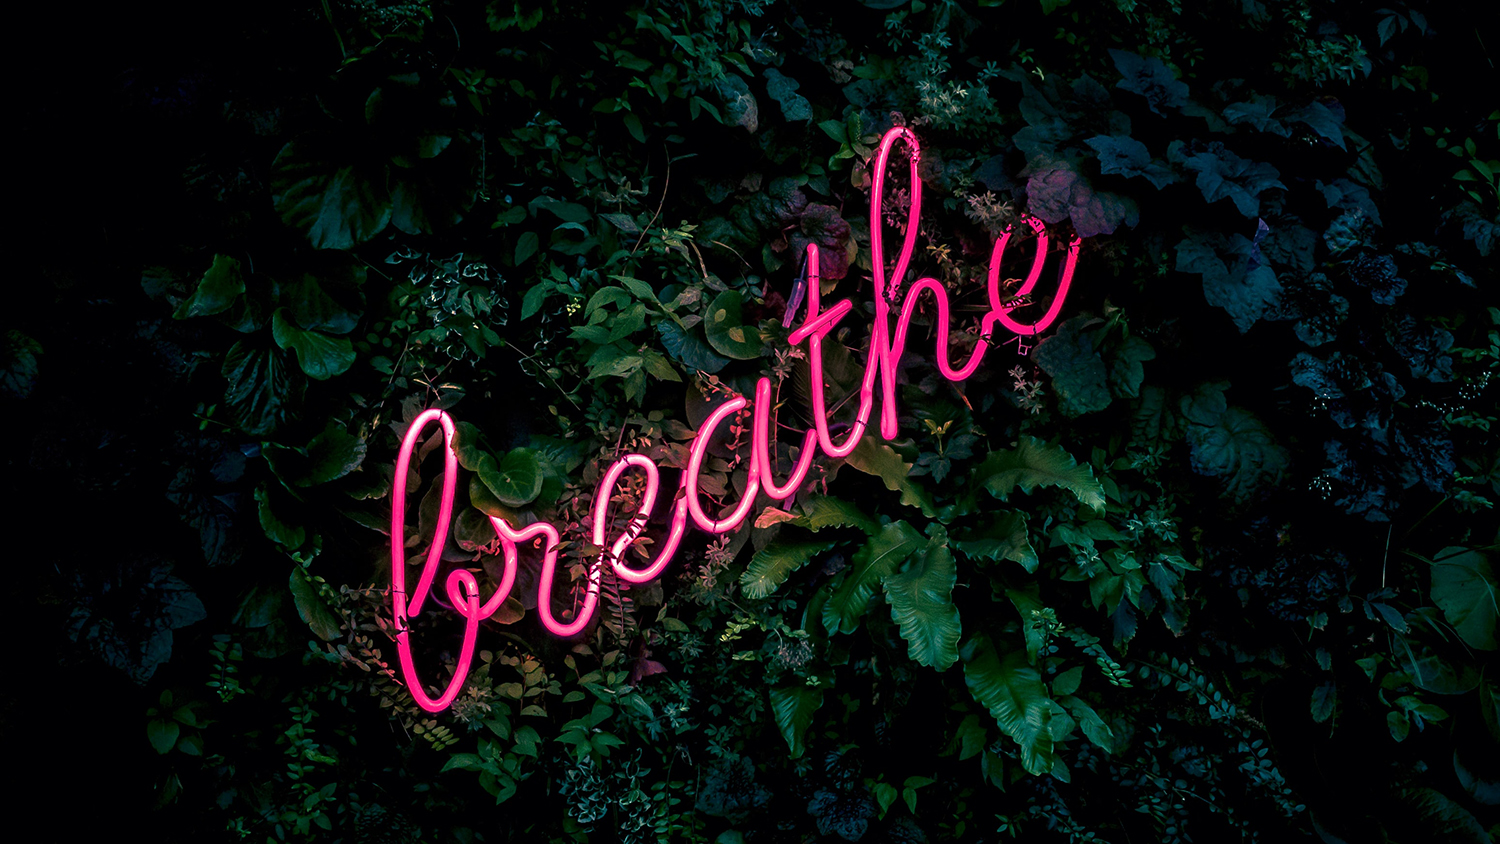 breathe neon sign among leaves